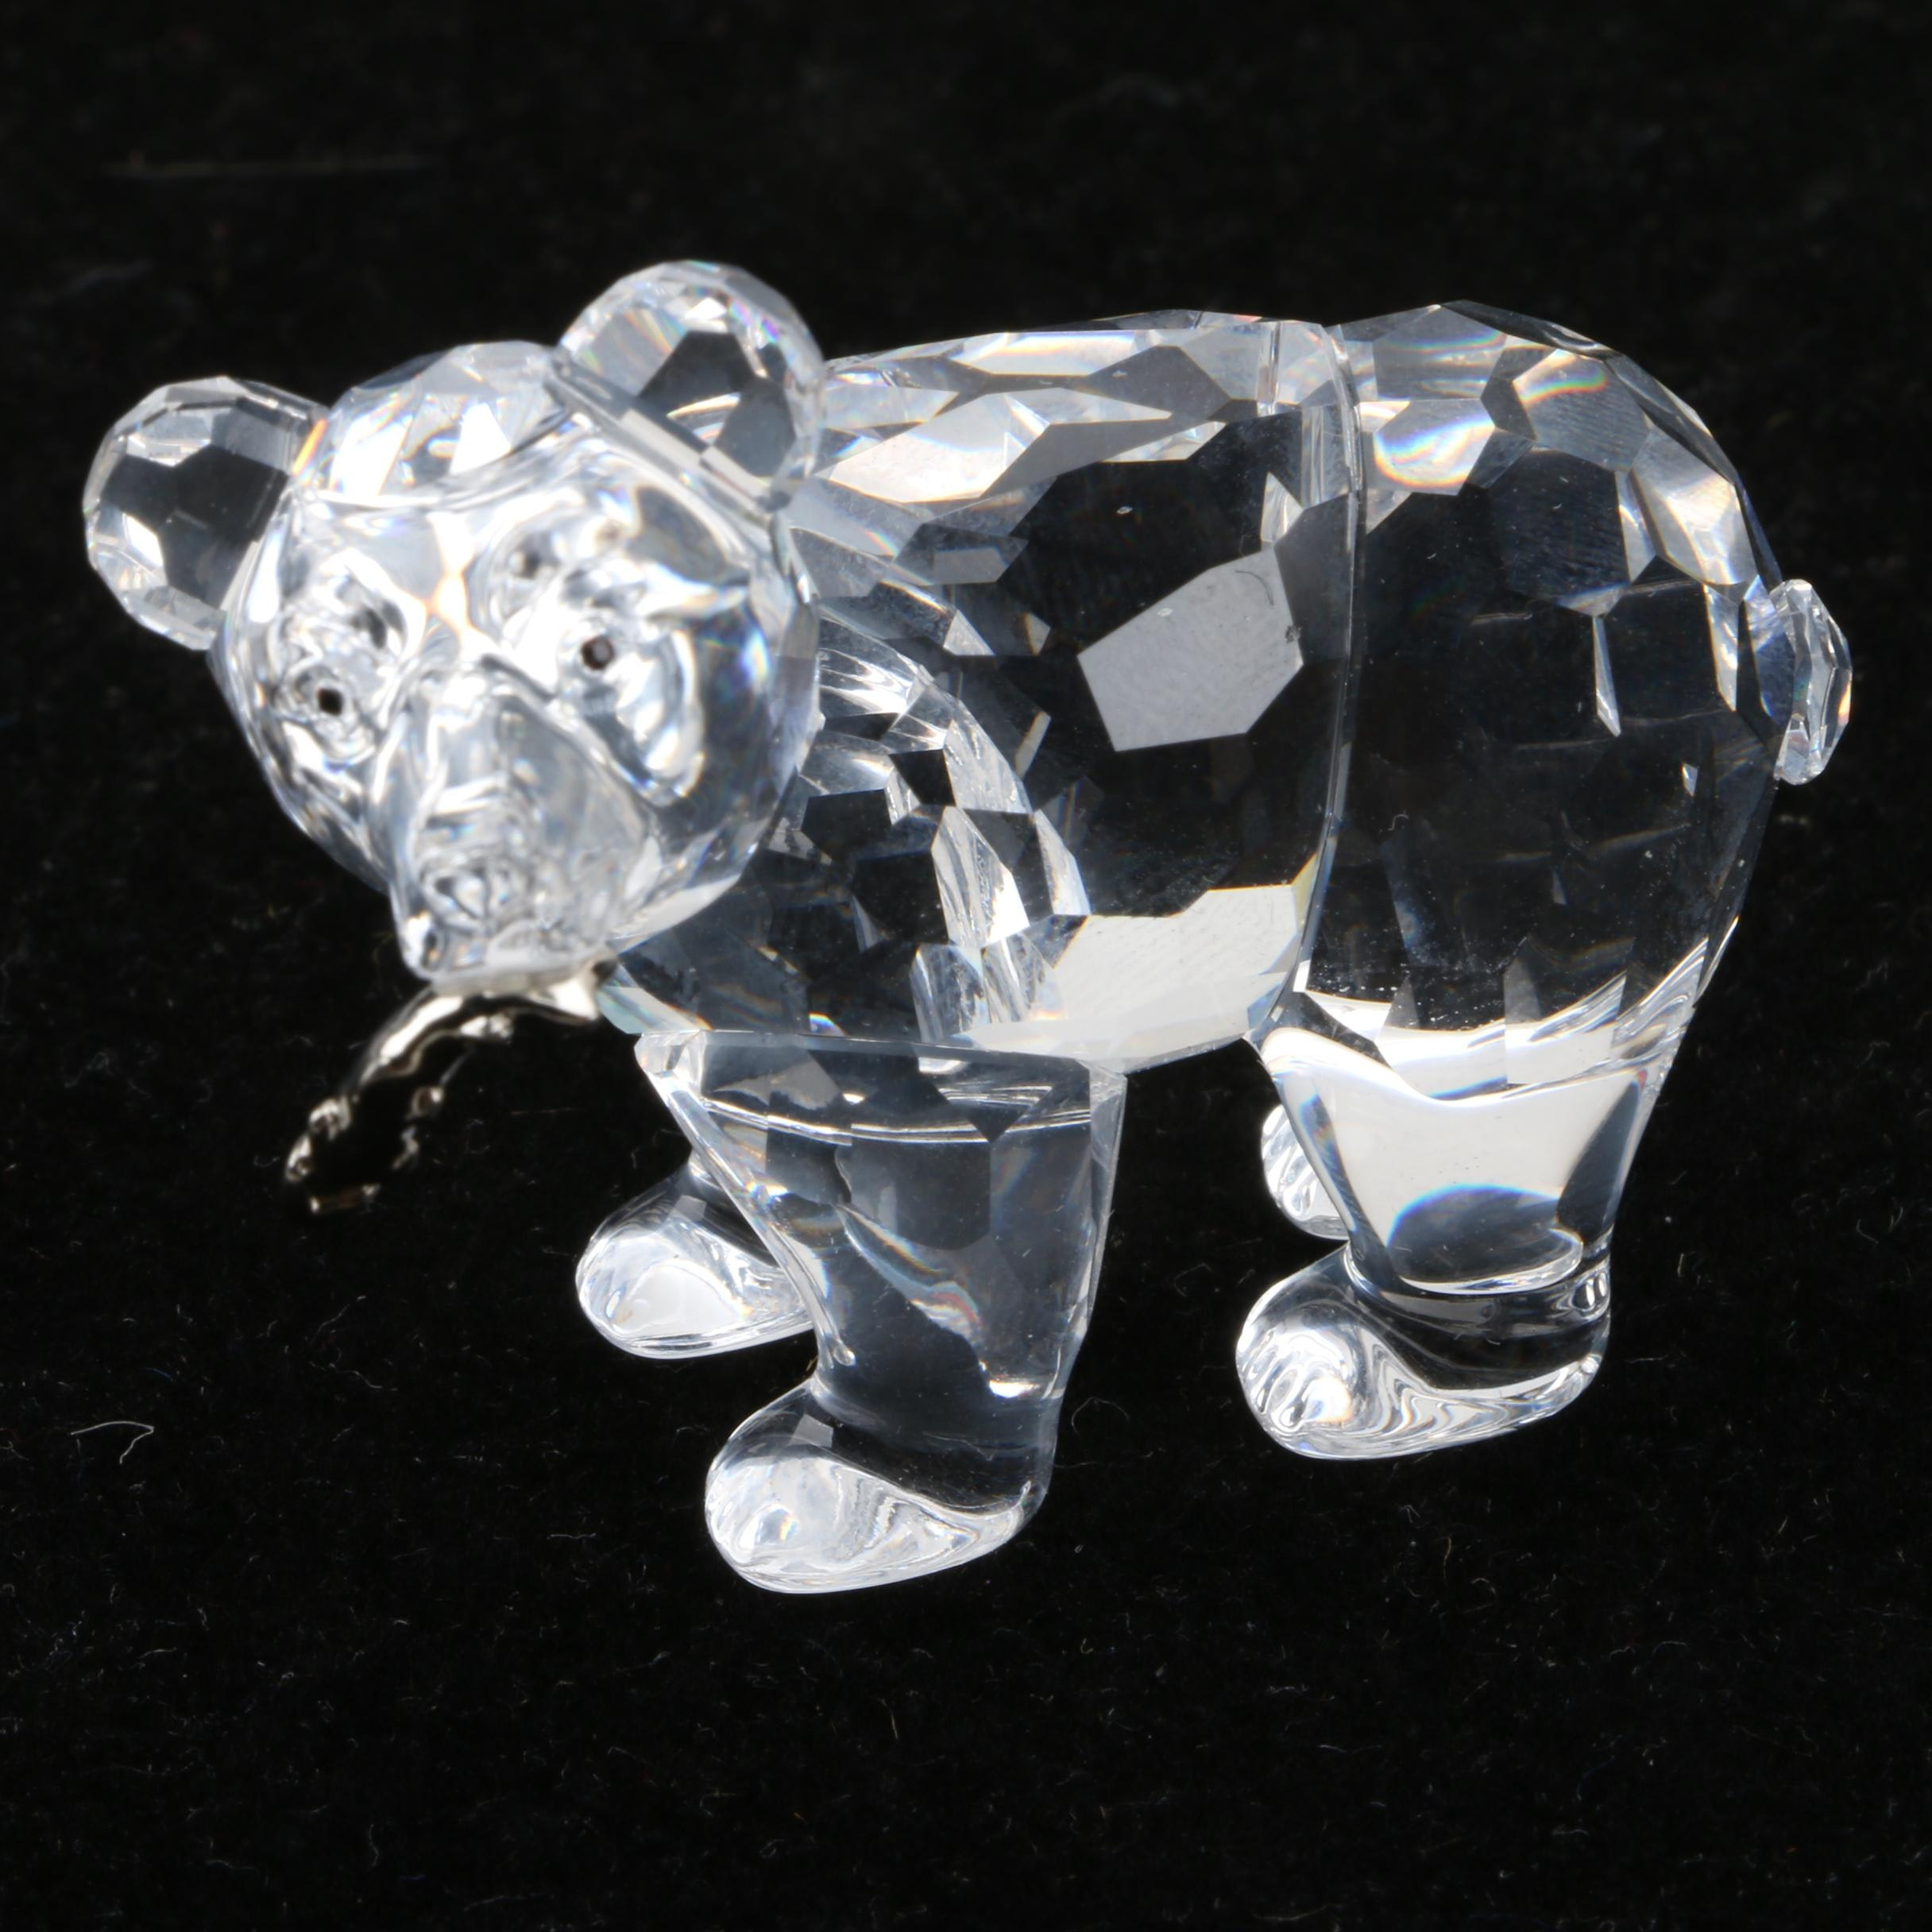 Swarovski Crystal Grizzly Bear Figurine